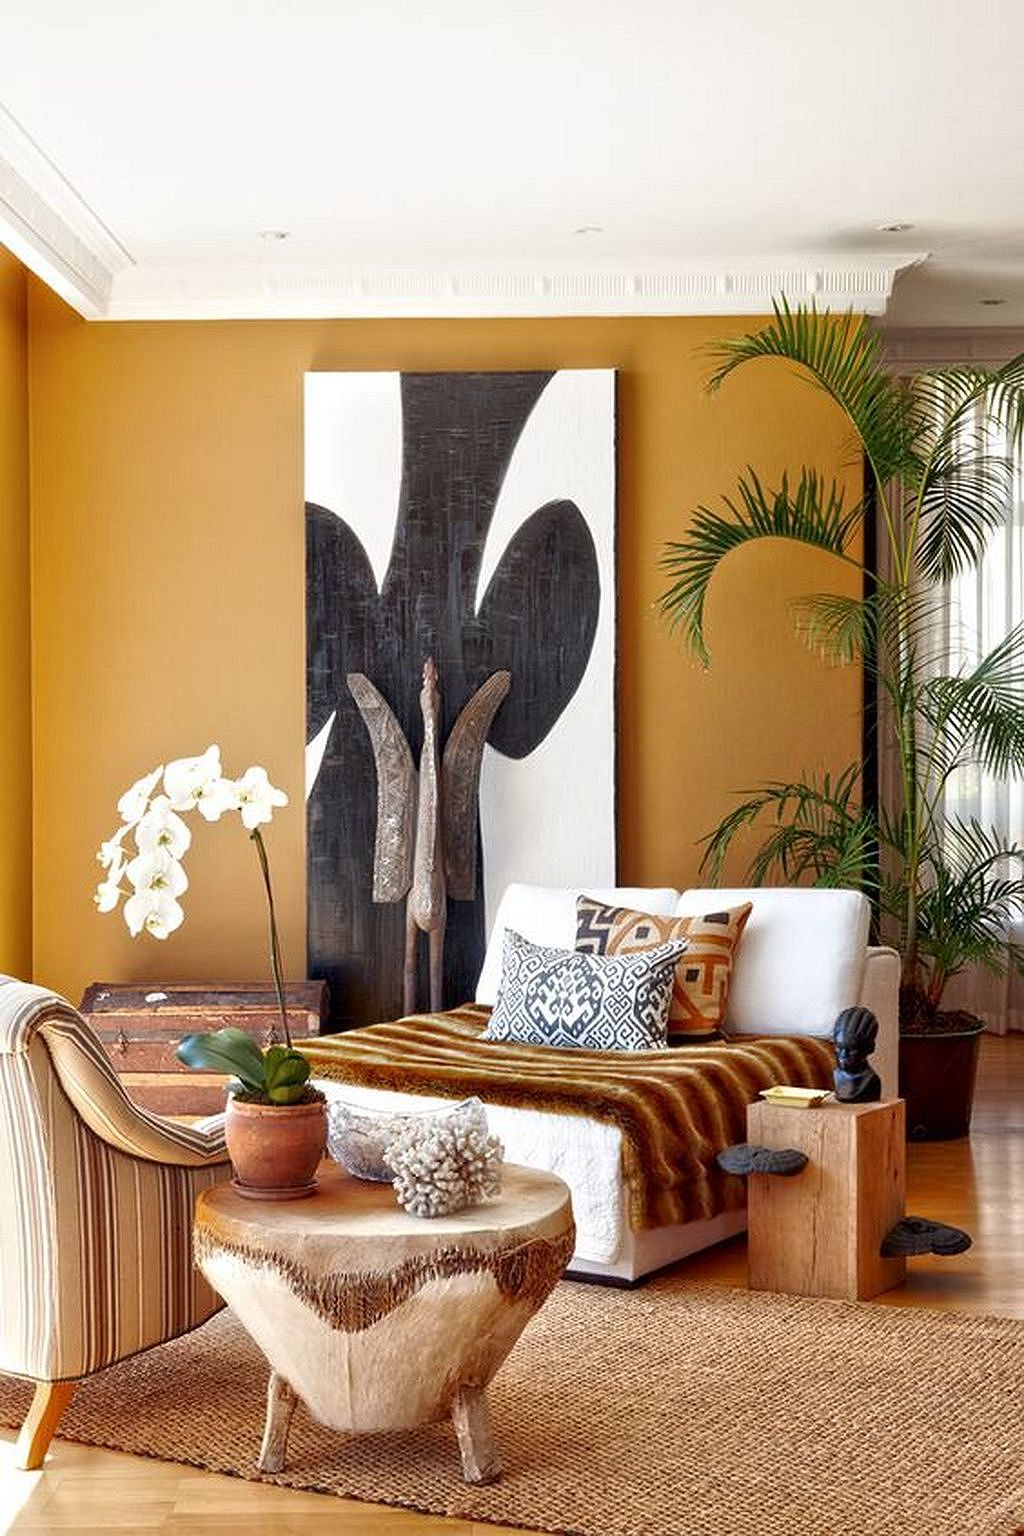 African Style Living Room Creative Modern Decor With Afrocentric African Style Ideas 29 In